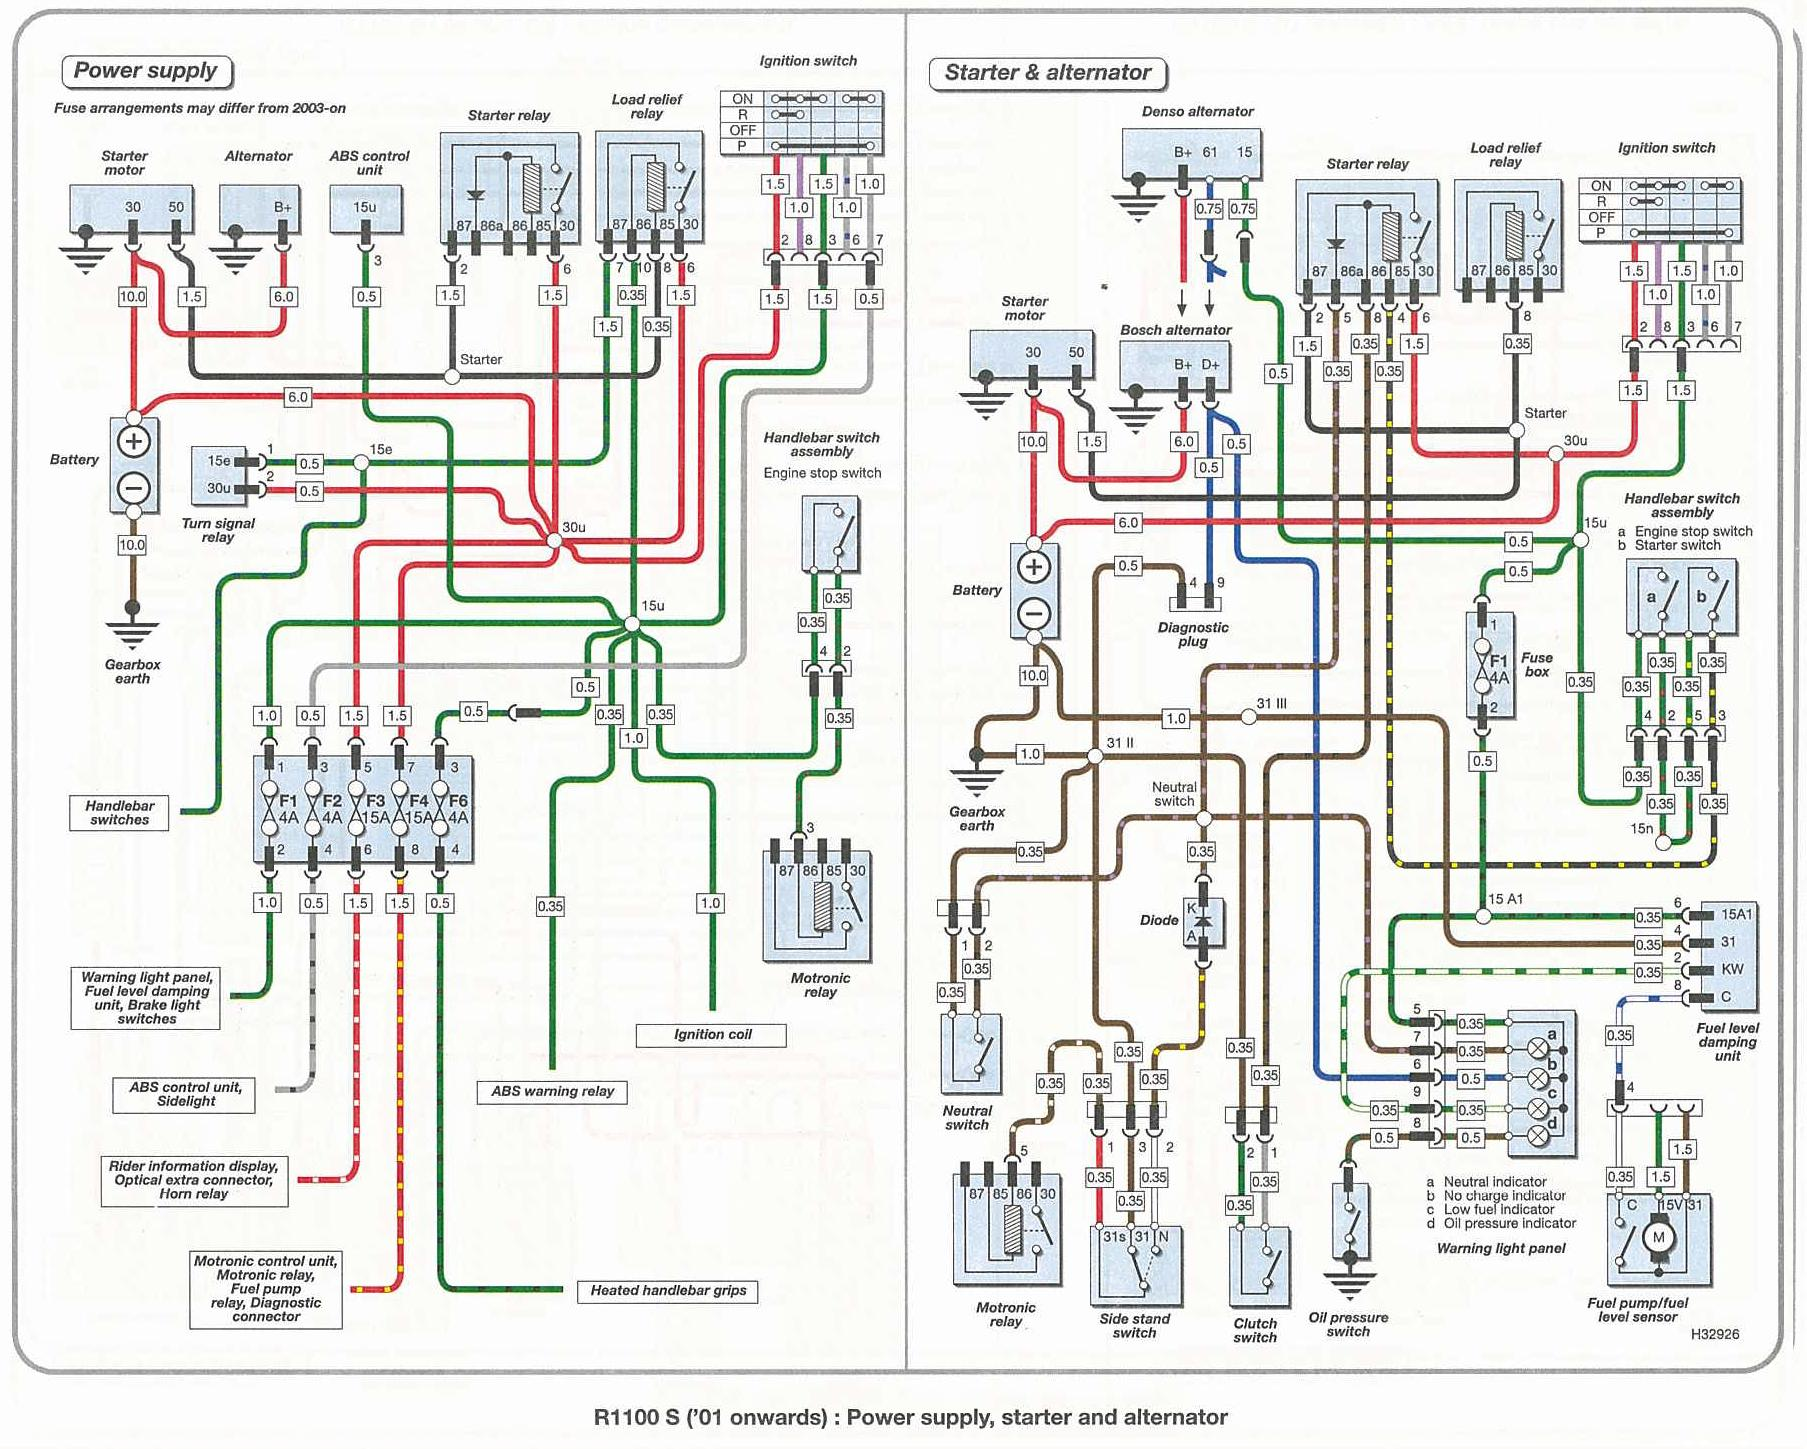 bmw r1100s wiring diagrams, Wiring diagram